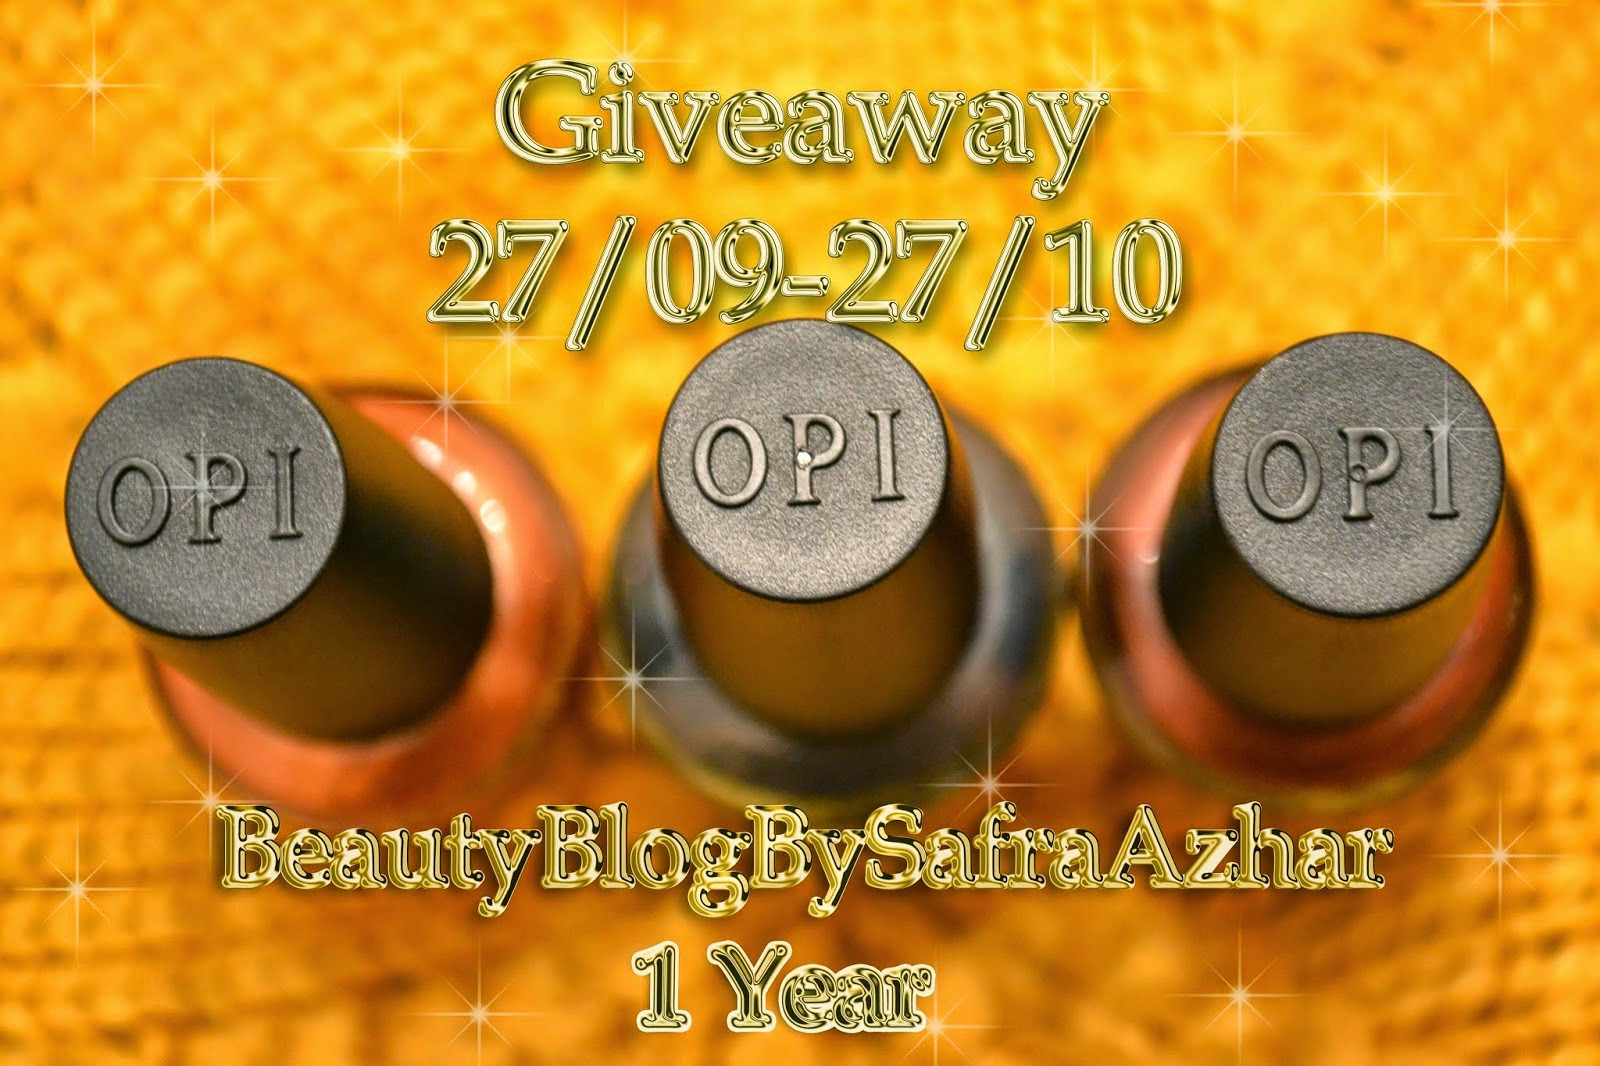 Giveaway  в честь Happy Birthday of BeautyBlogBySafraAzhar!:)